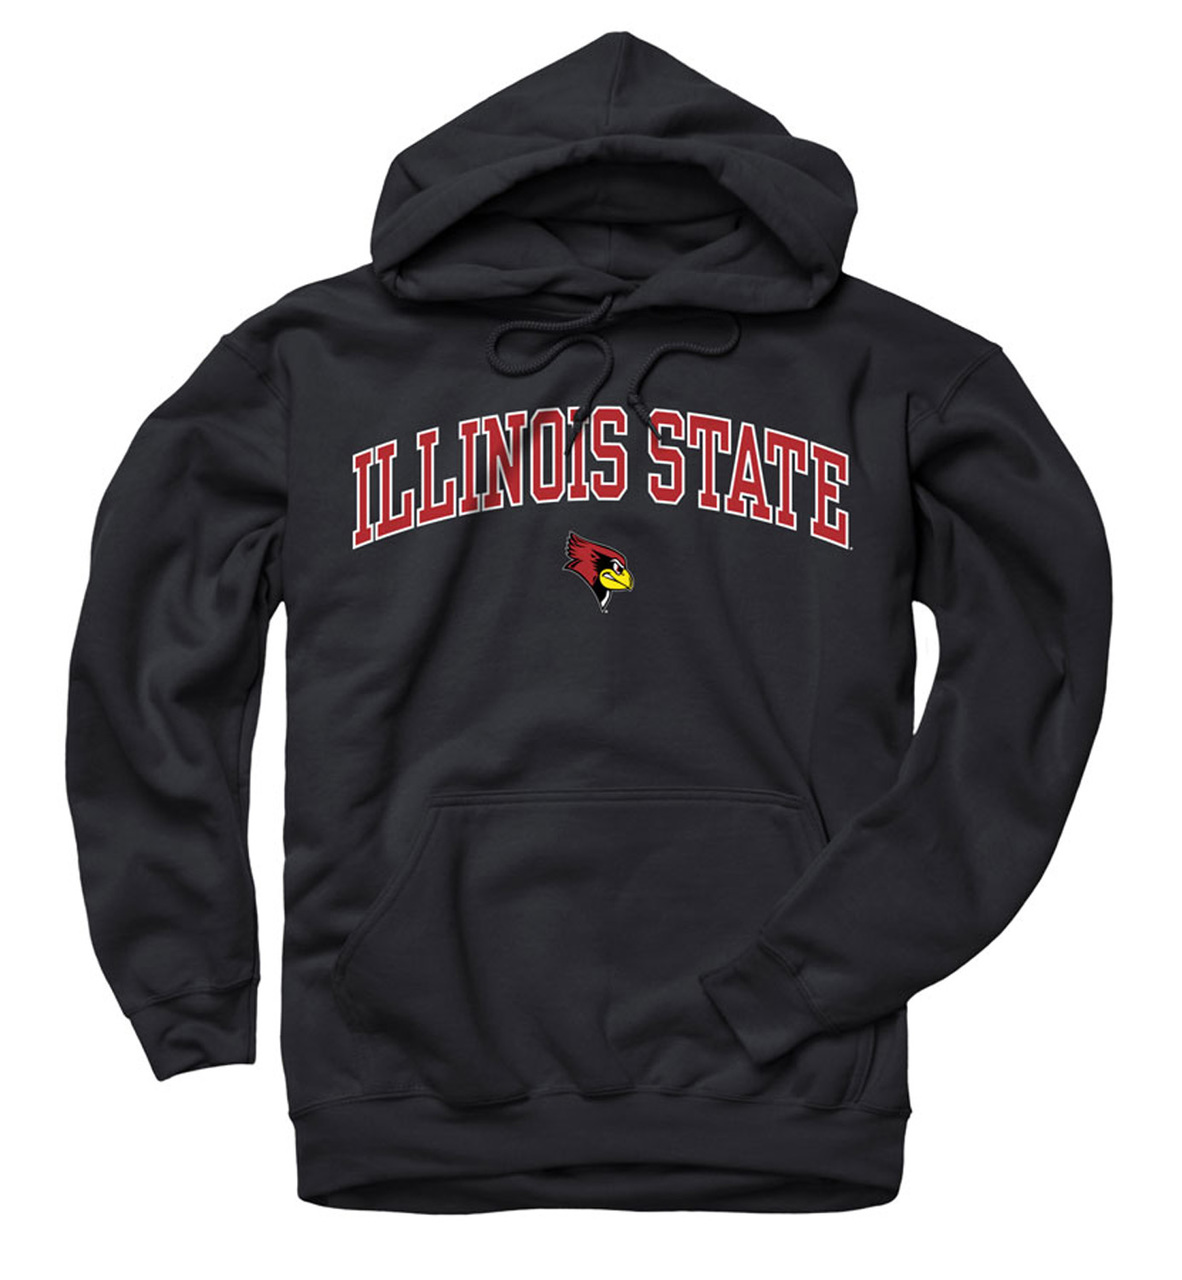 Illinois State Redbirds Arch and Logo Hooded Sweatshirt - Black